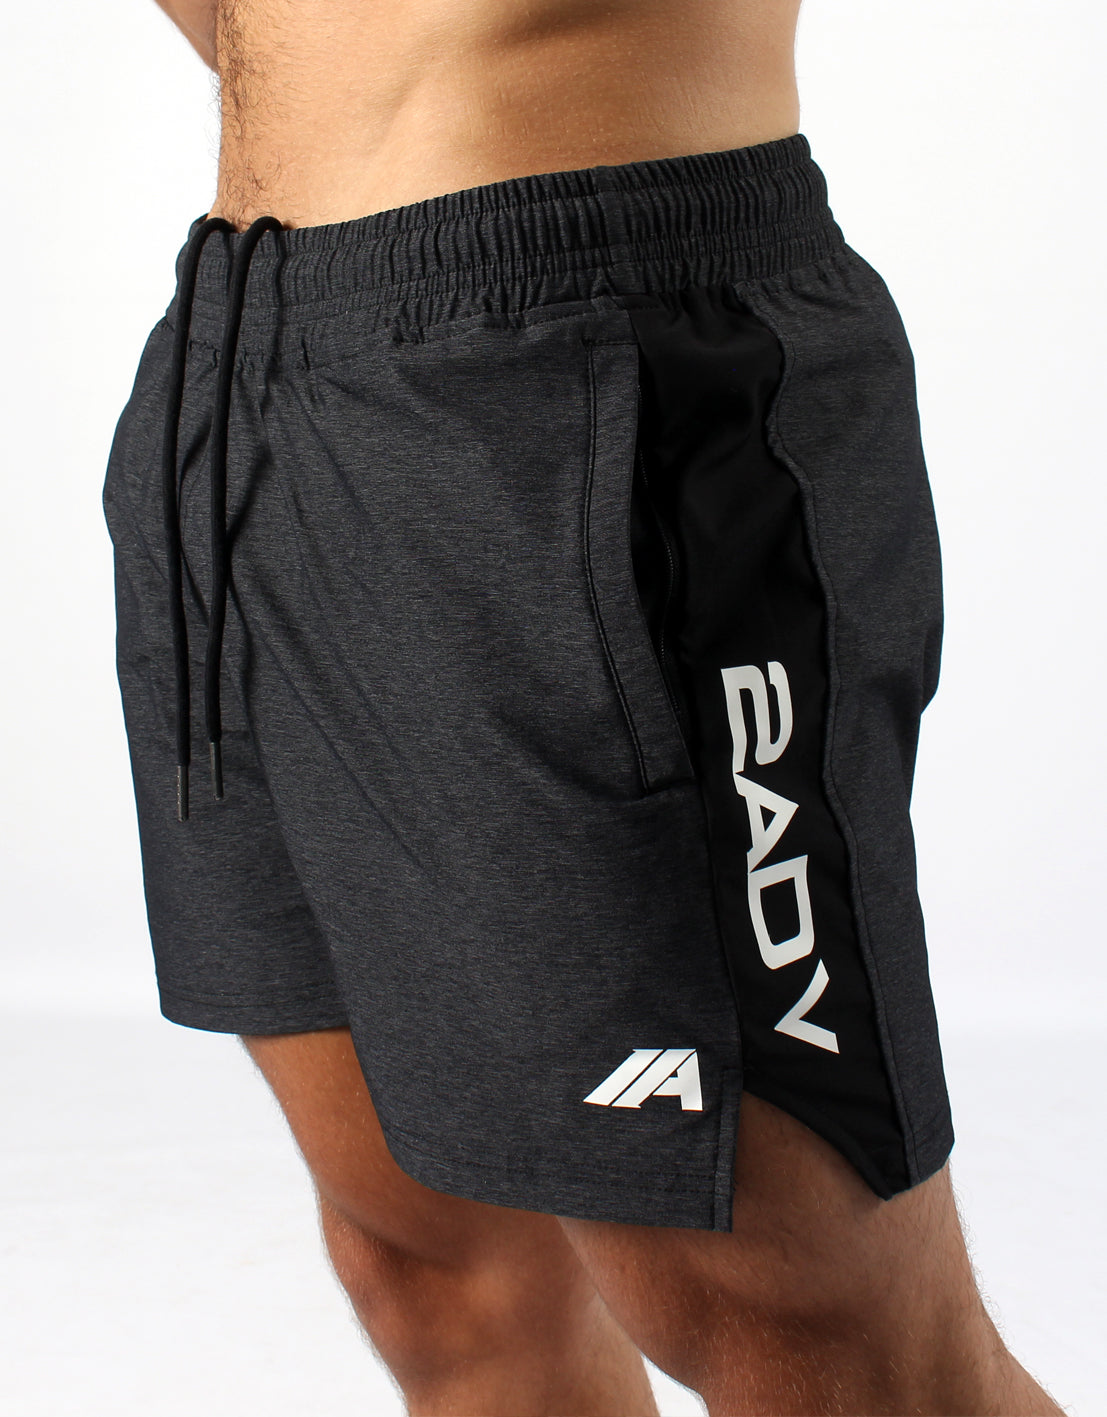 Elite Sport Shorts -  Grey - 2 Addictive